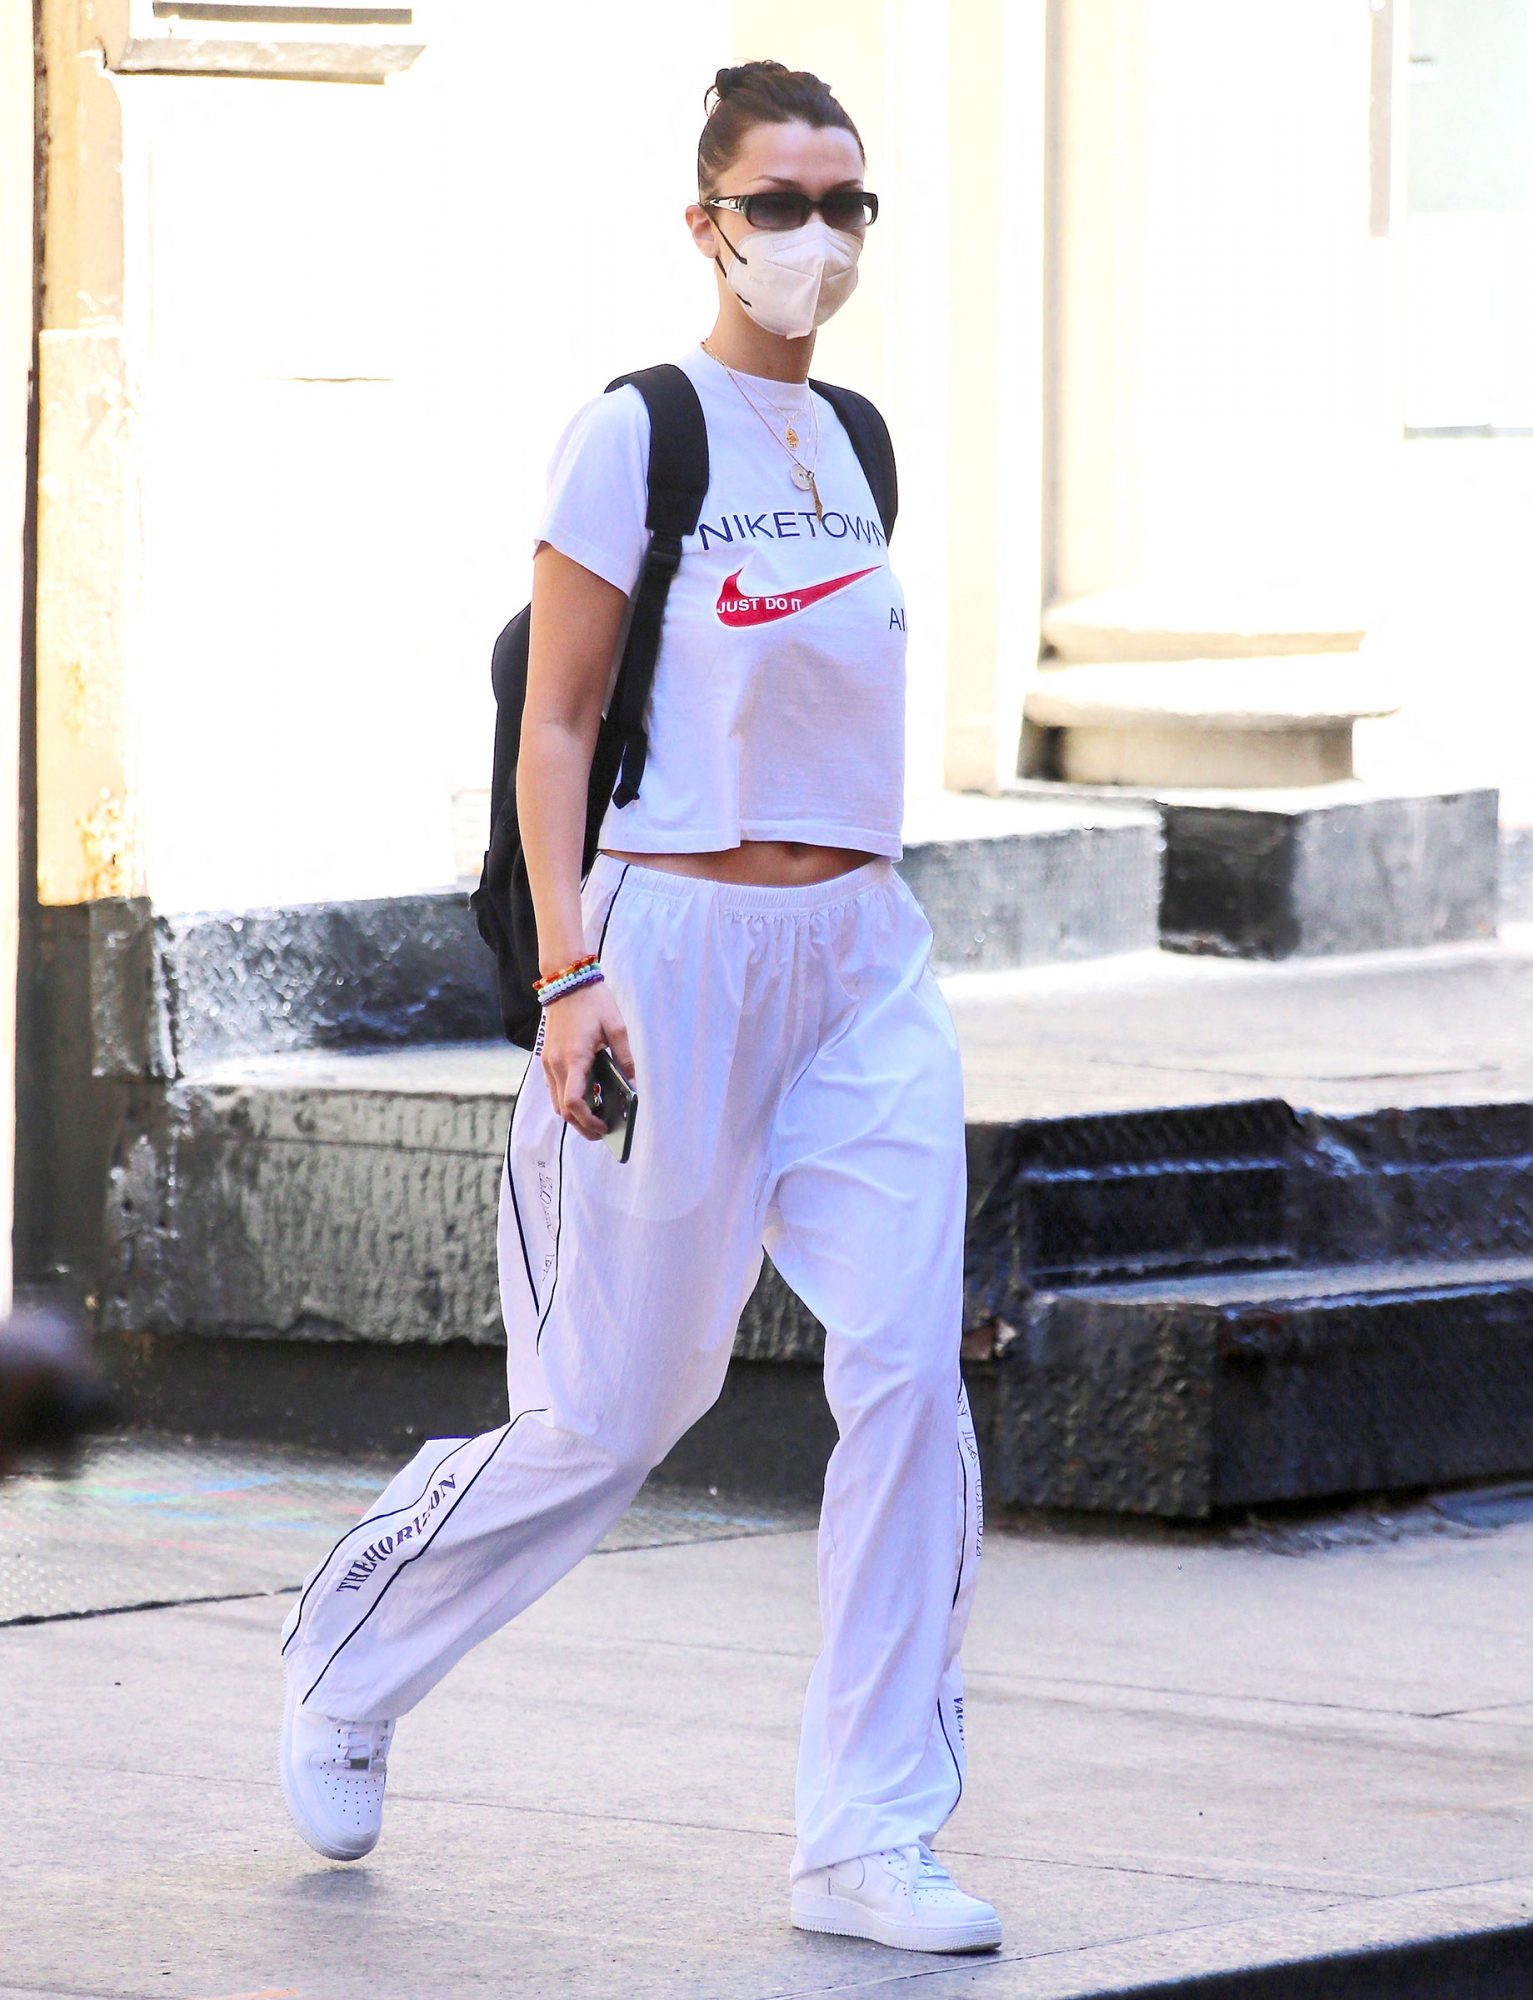 Bella Hadid is going to a private apartment in Soho, New York, NY on May 18, 2021